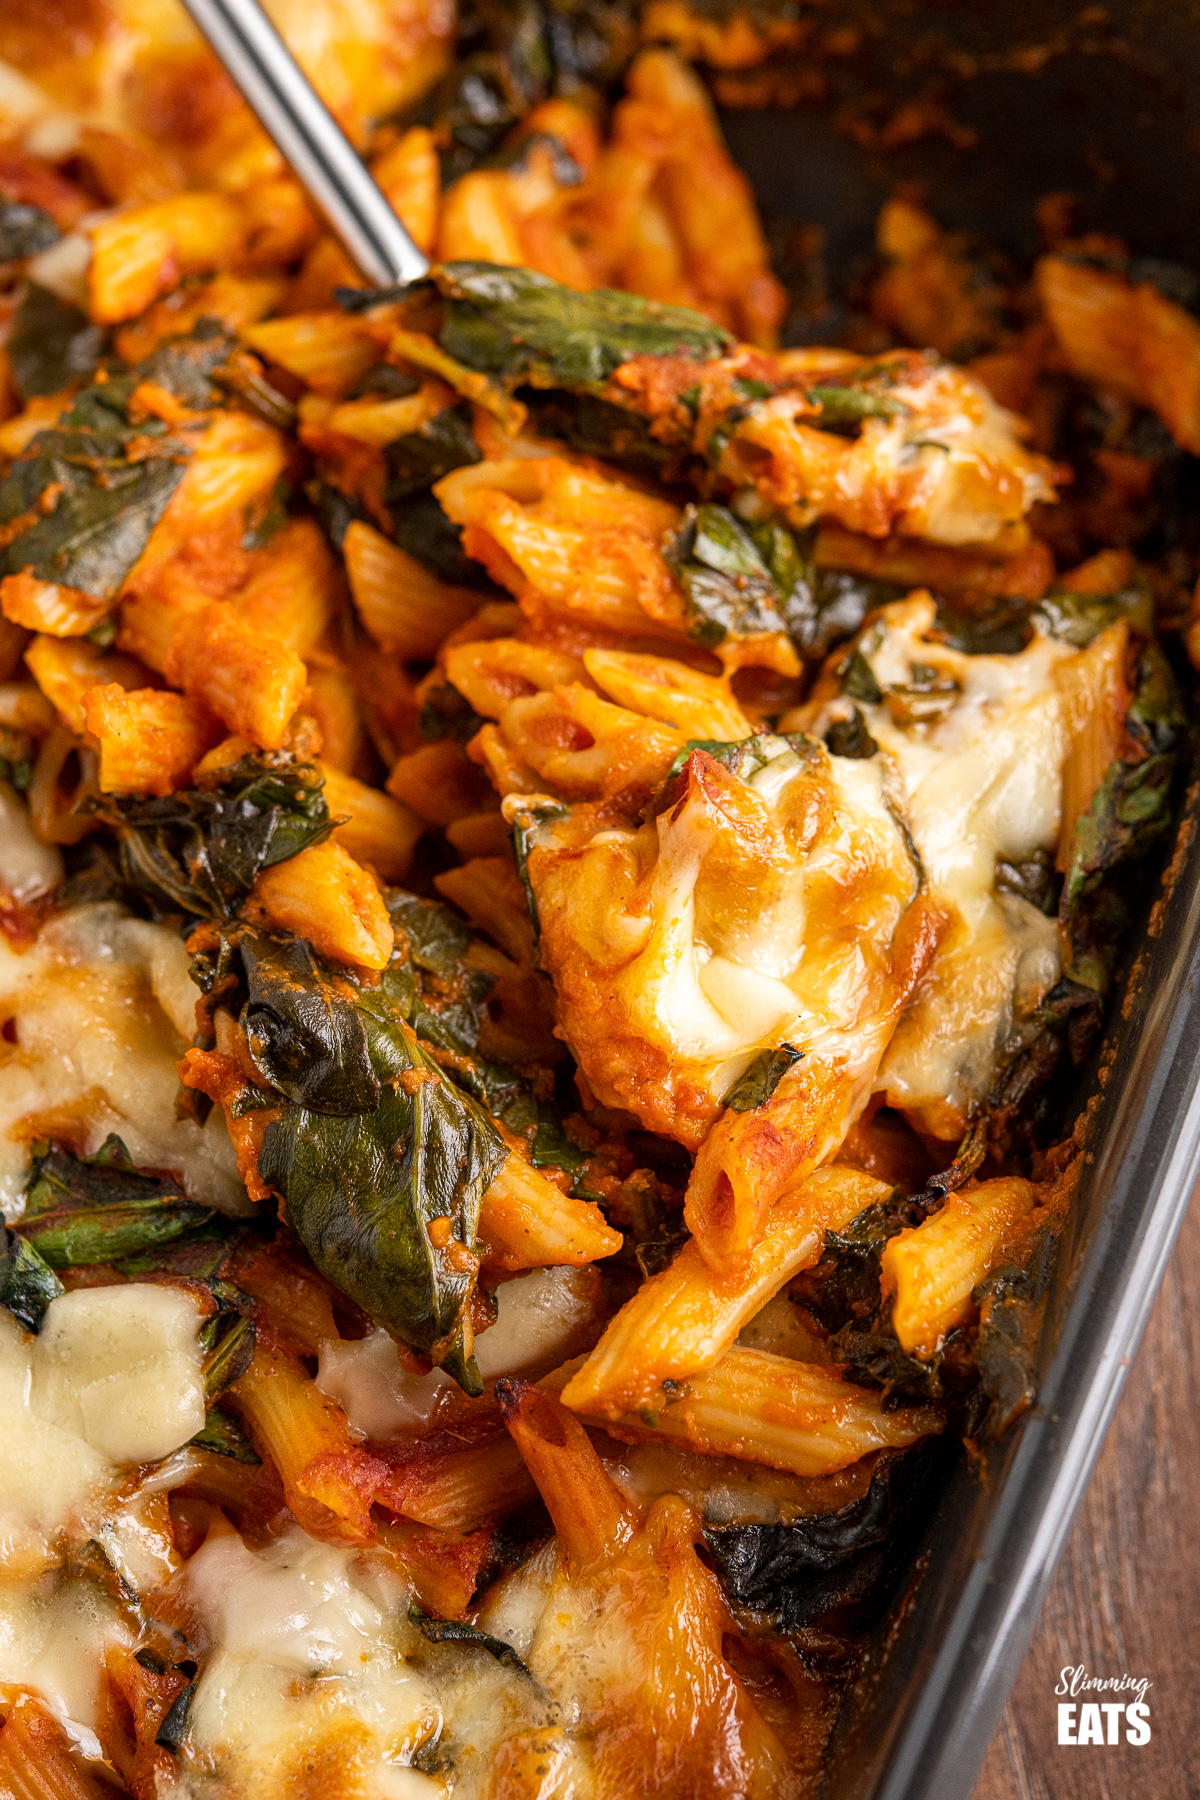 spoon dishing up spinach pasta bake from dark grey oven dish